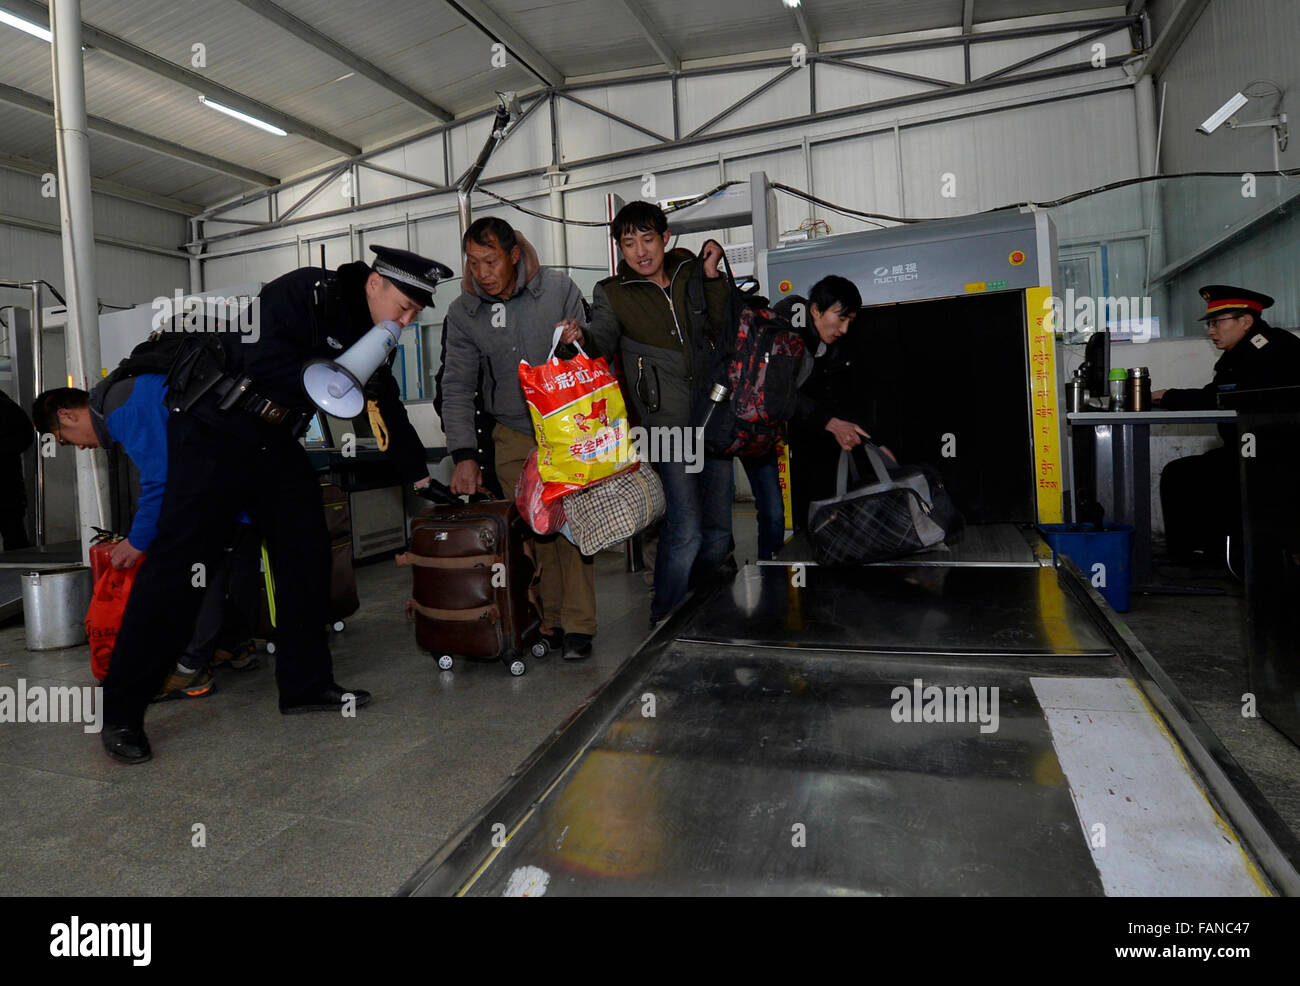 Lhasa, China's Tibet Autonomous Region. 2nd Jan, 2016. Passengers pass the security check in a train station - Stock Image